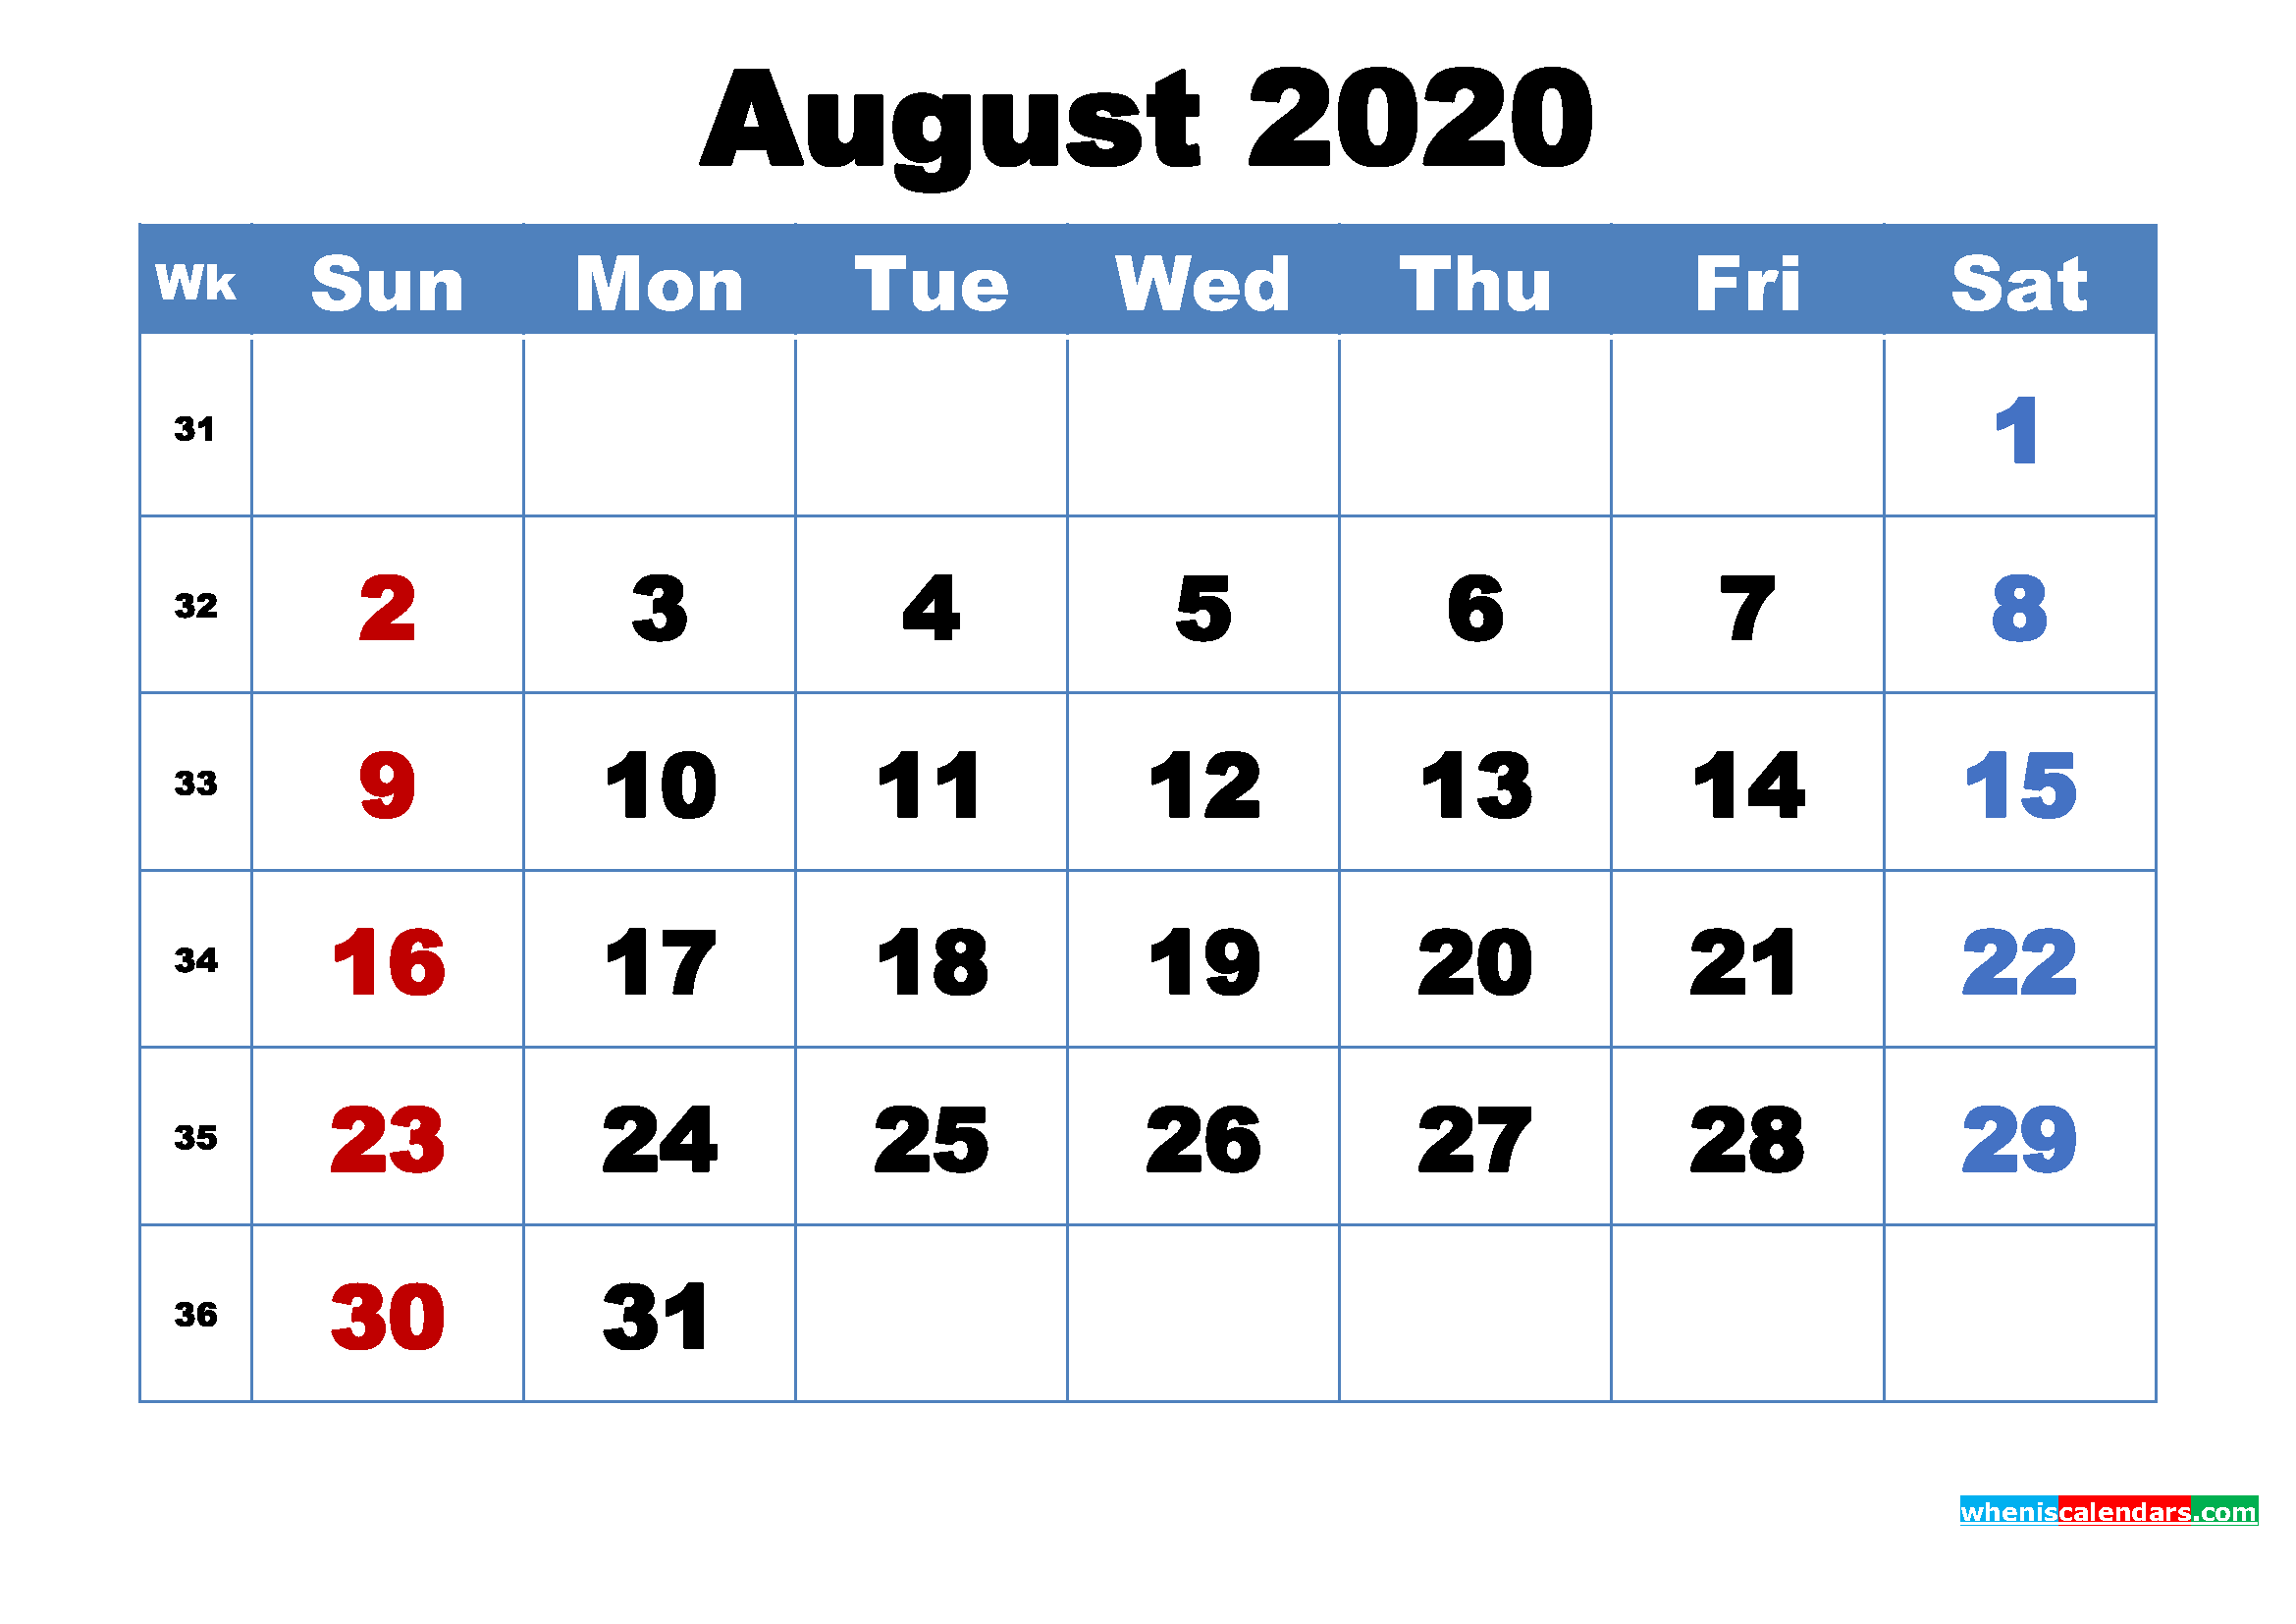 August 2020 Calendar Wallpaper Free Download